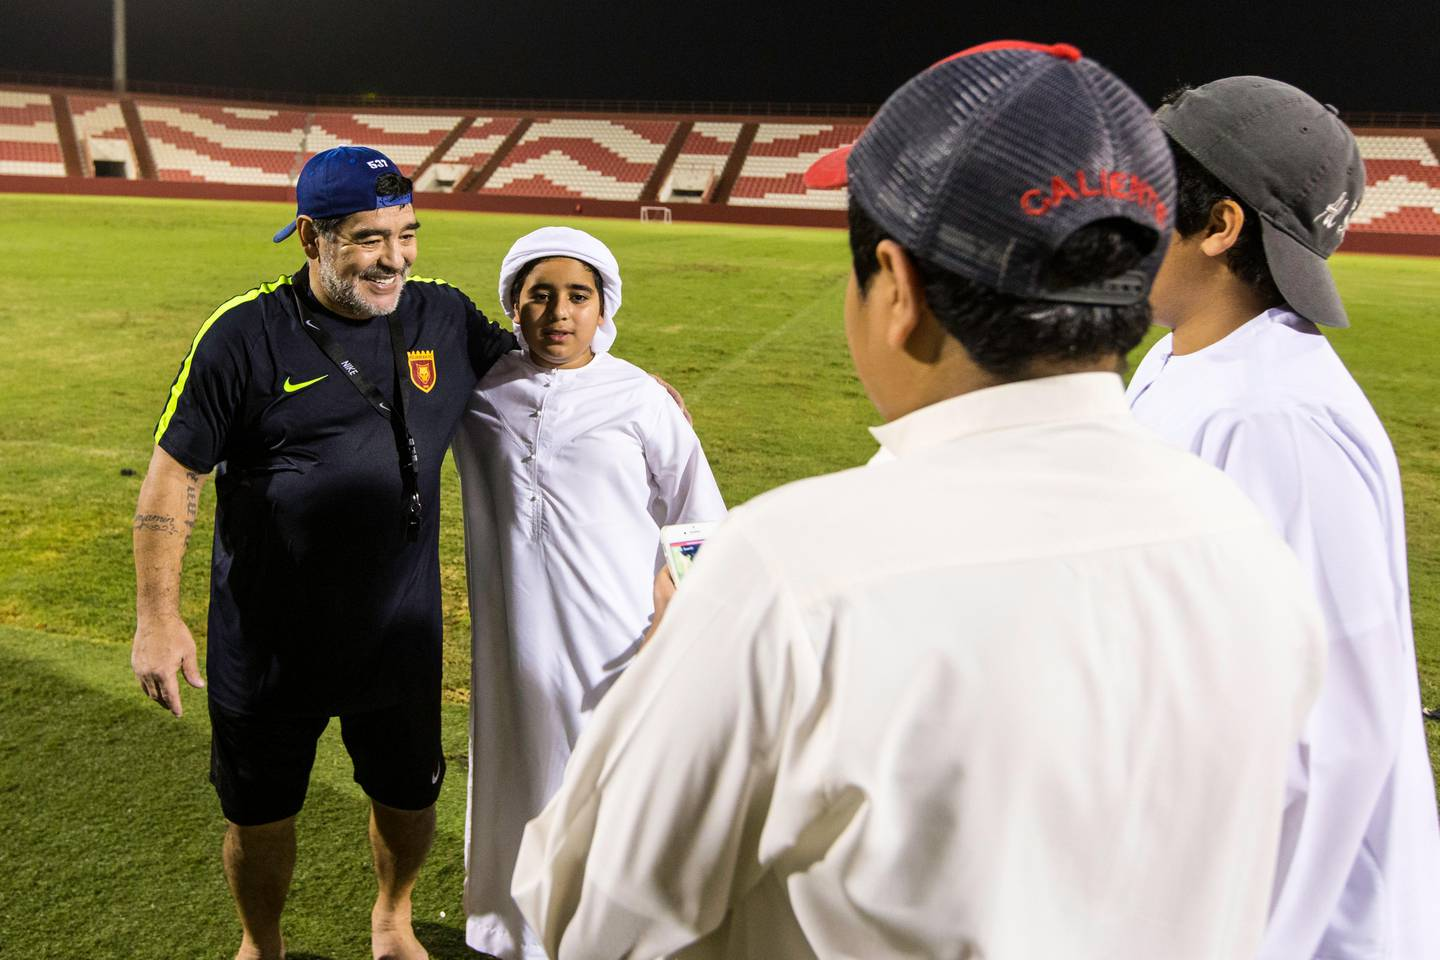 Fujairah, United Arab Emirates, July 25, 2017:    Diego Maradona, head coach of Fujairah football club, speaks with local fans after a training session ahead of the UAE first division season at the Fujairah stadium in Fujairah on July 25, 2017. Christopher Pike / The National  Reporter: John McAuley Section: Sport